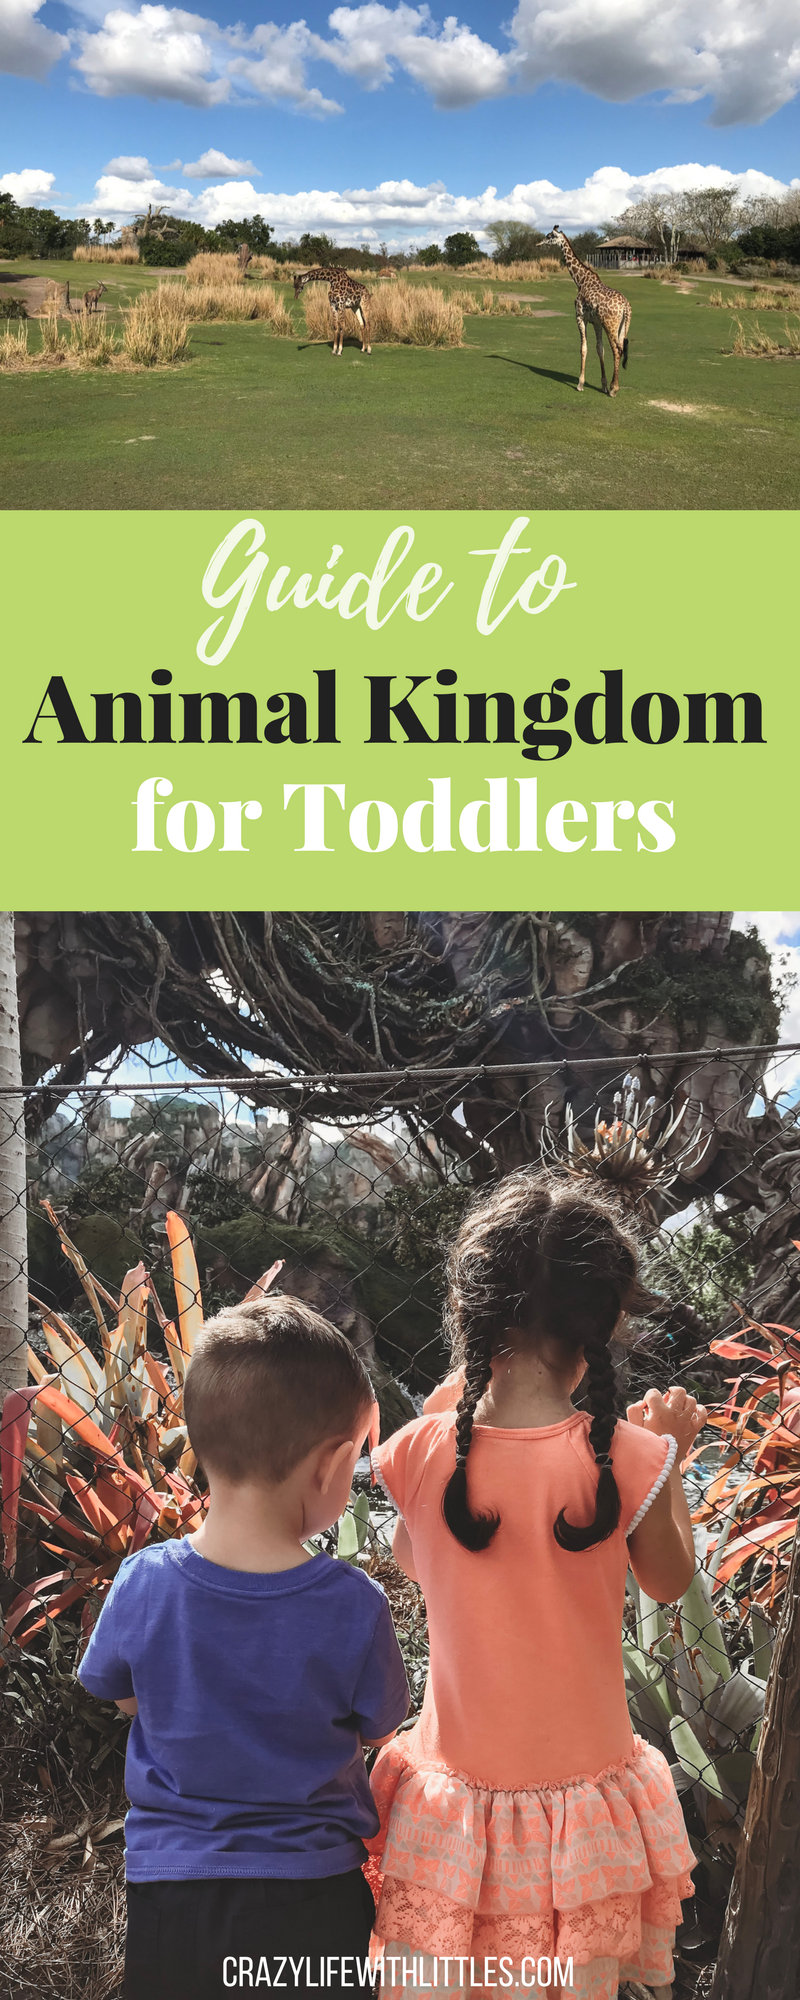 tips for taking toddlers to Animal Kingdom, where to go in Animal Kingdom with toddlers and preschoolers, a guide to Animal Kingdom for kids